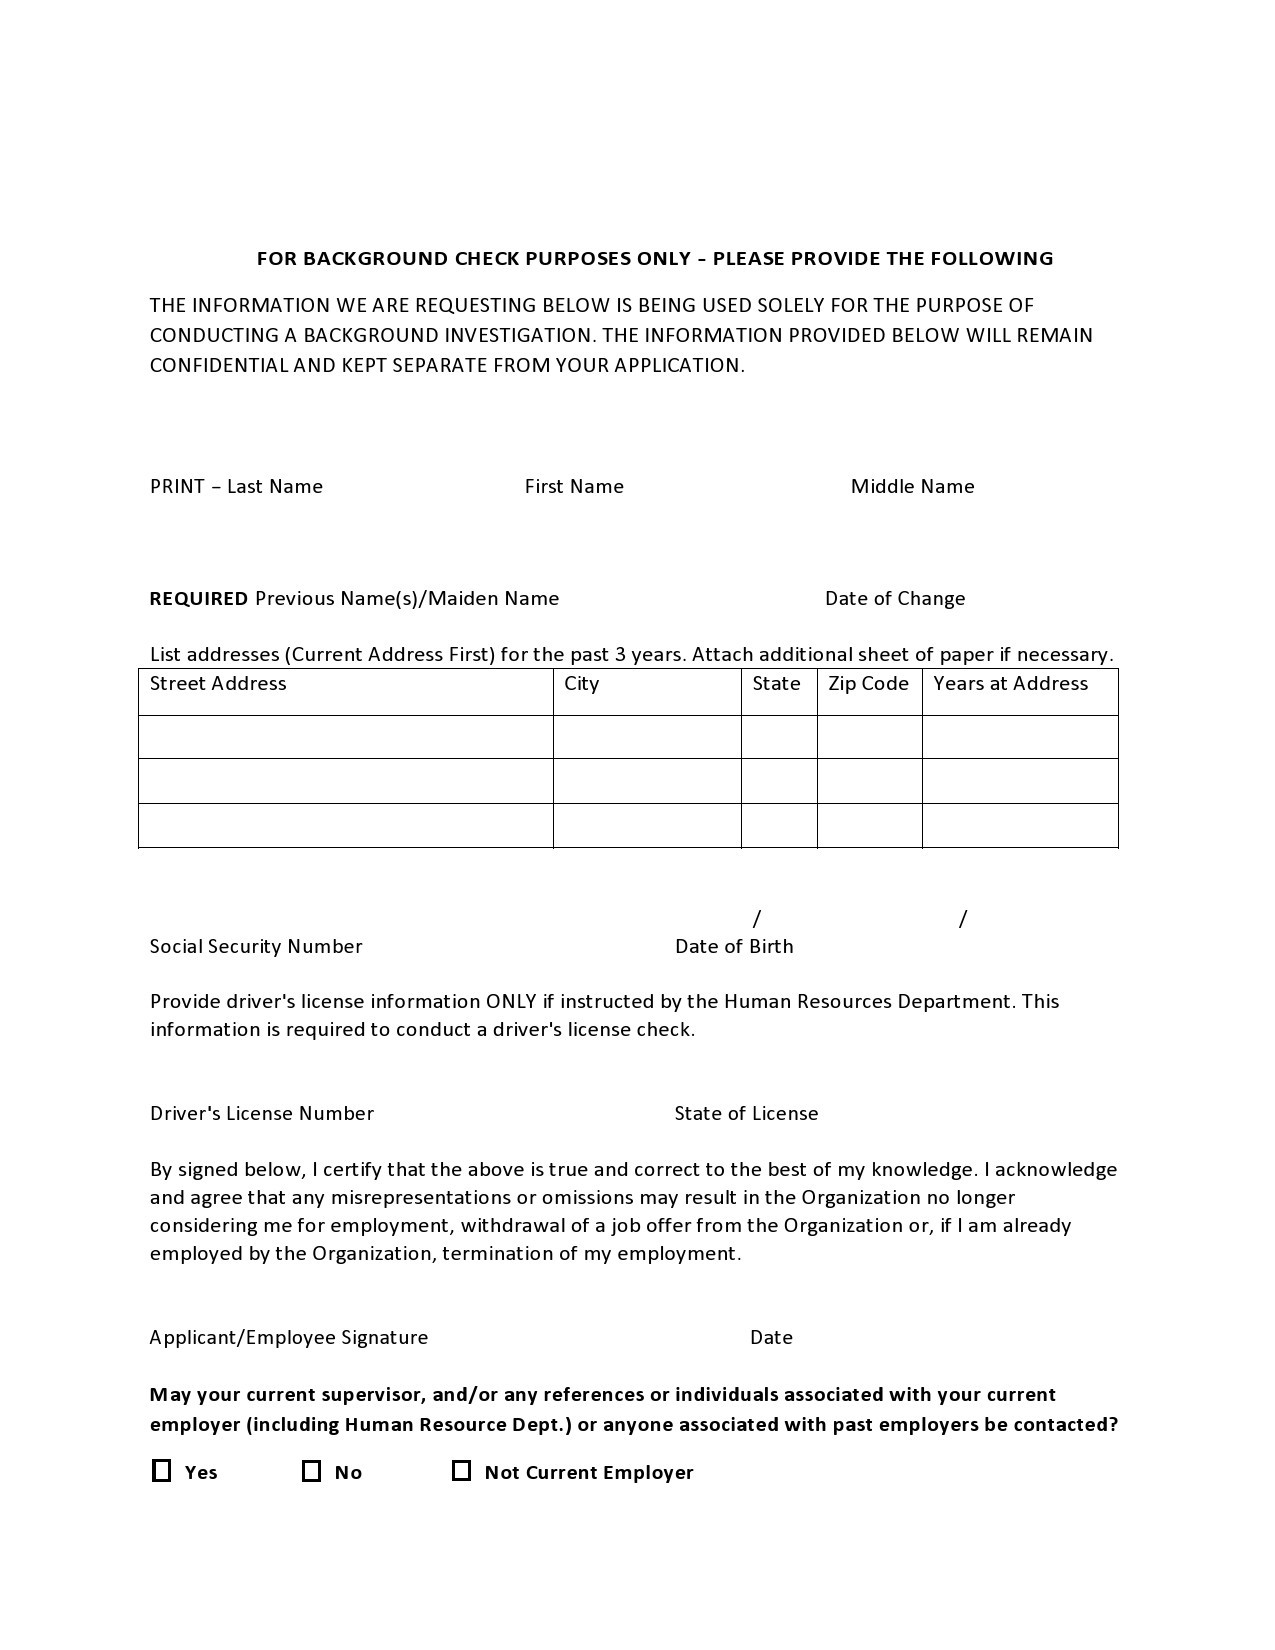 Free background check form 04